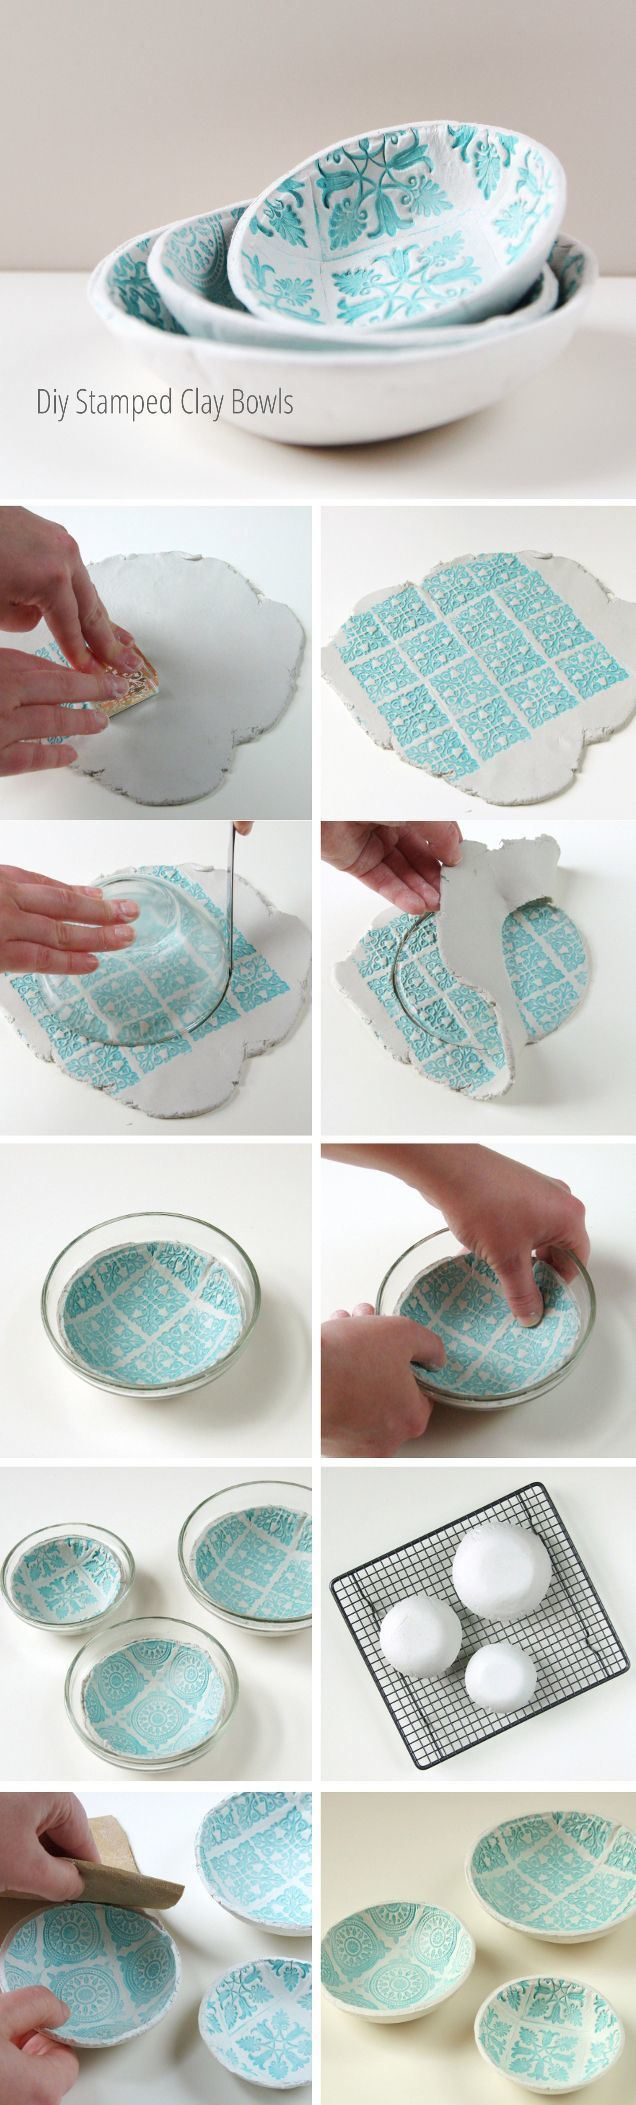 10 Cheap DIY Gift Ideas Your Friends Will Actually Like… Especially #6. - http://www.lifebuzz.com/diy-gifts/